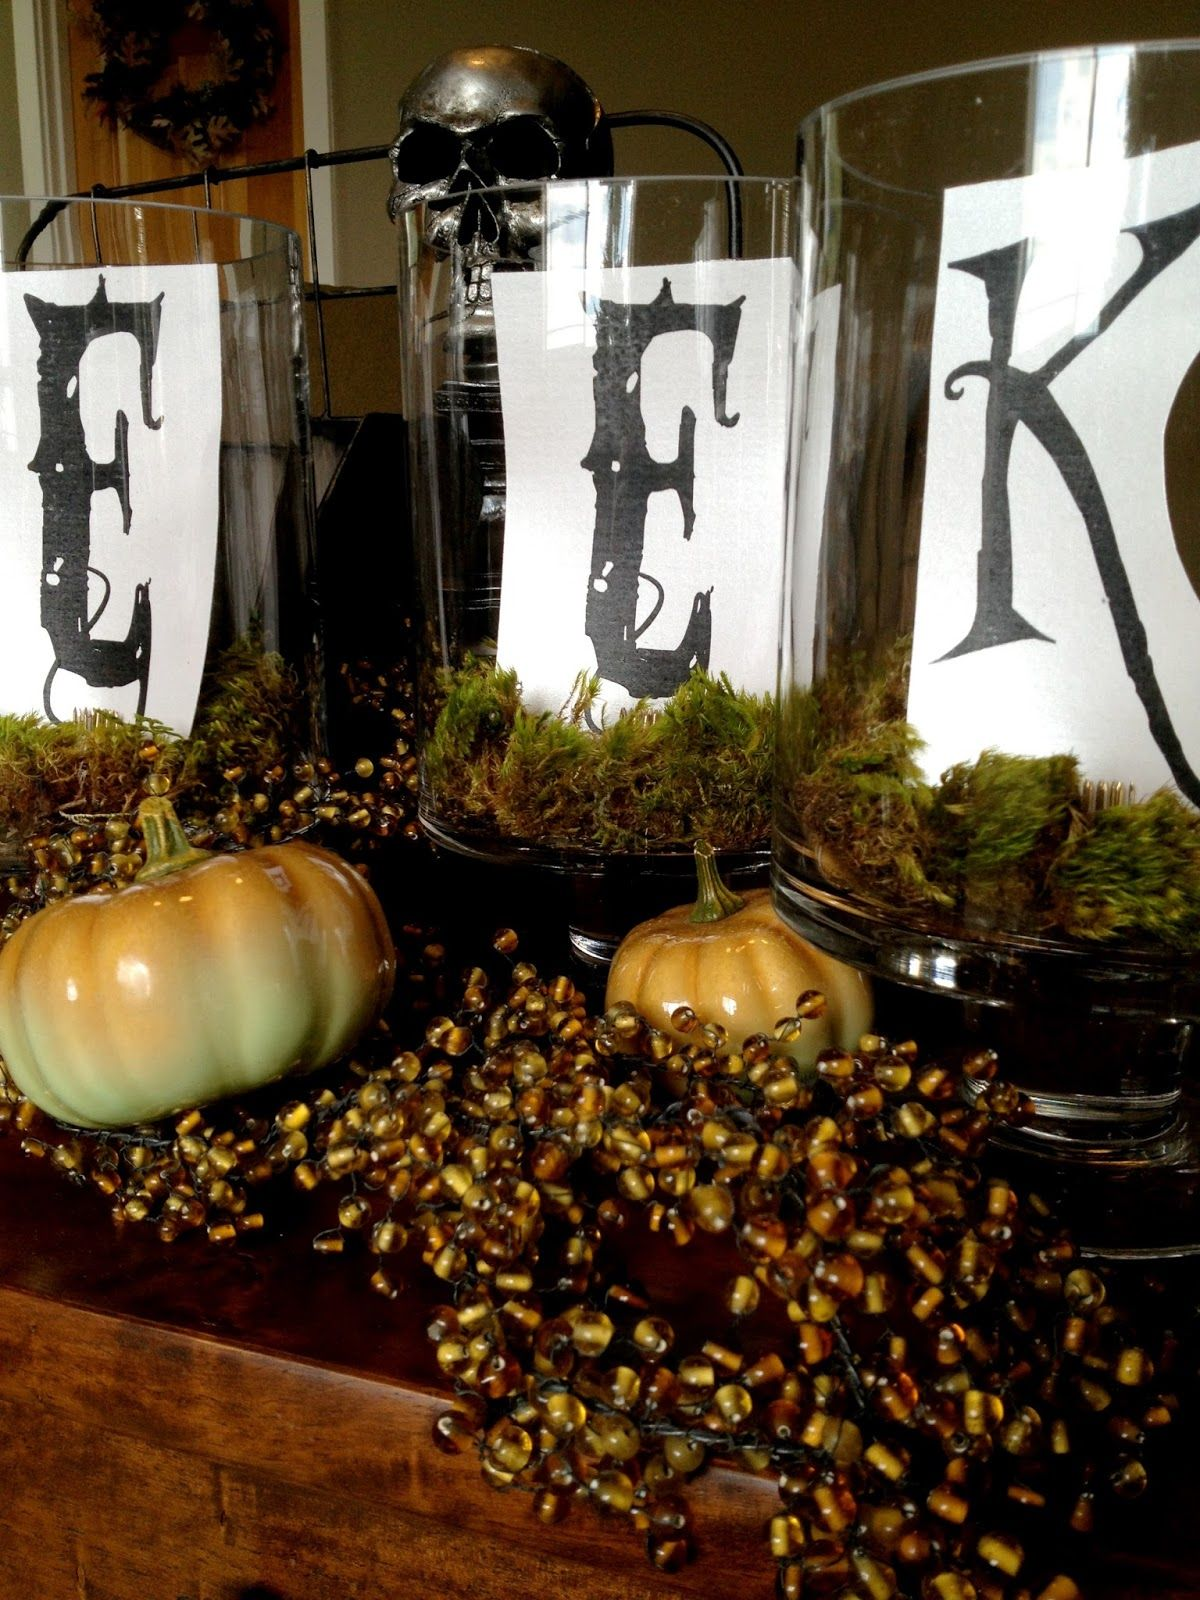 DIY simple Halloween decor - containing the eek! in glass hurricanes